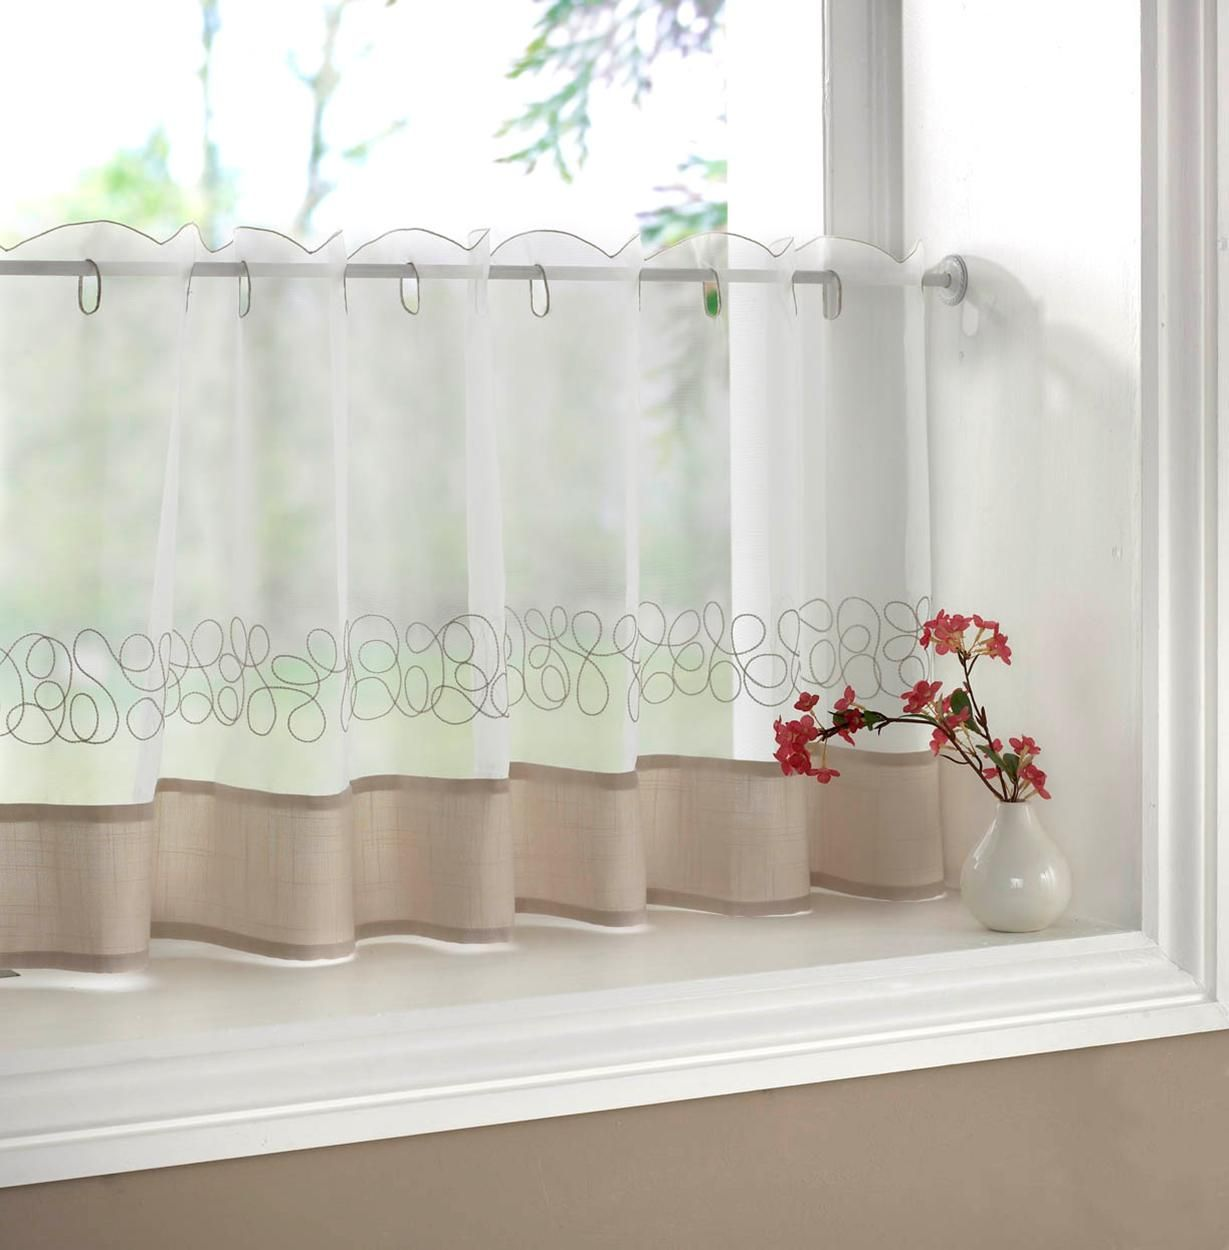 Pretty Half Window Curtains On Window With Small Vase And Flower Curtains Kitchen Curtains Half Window Curtains